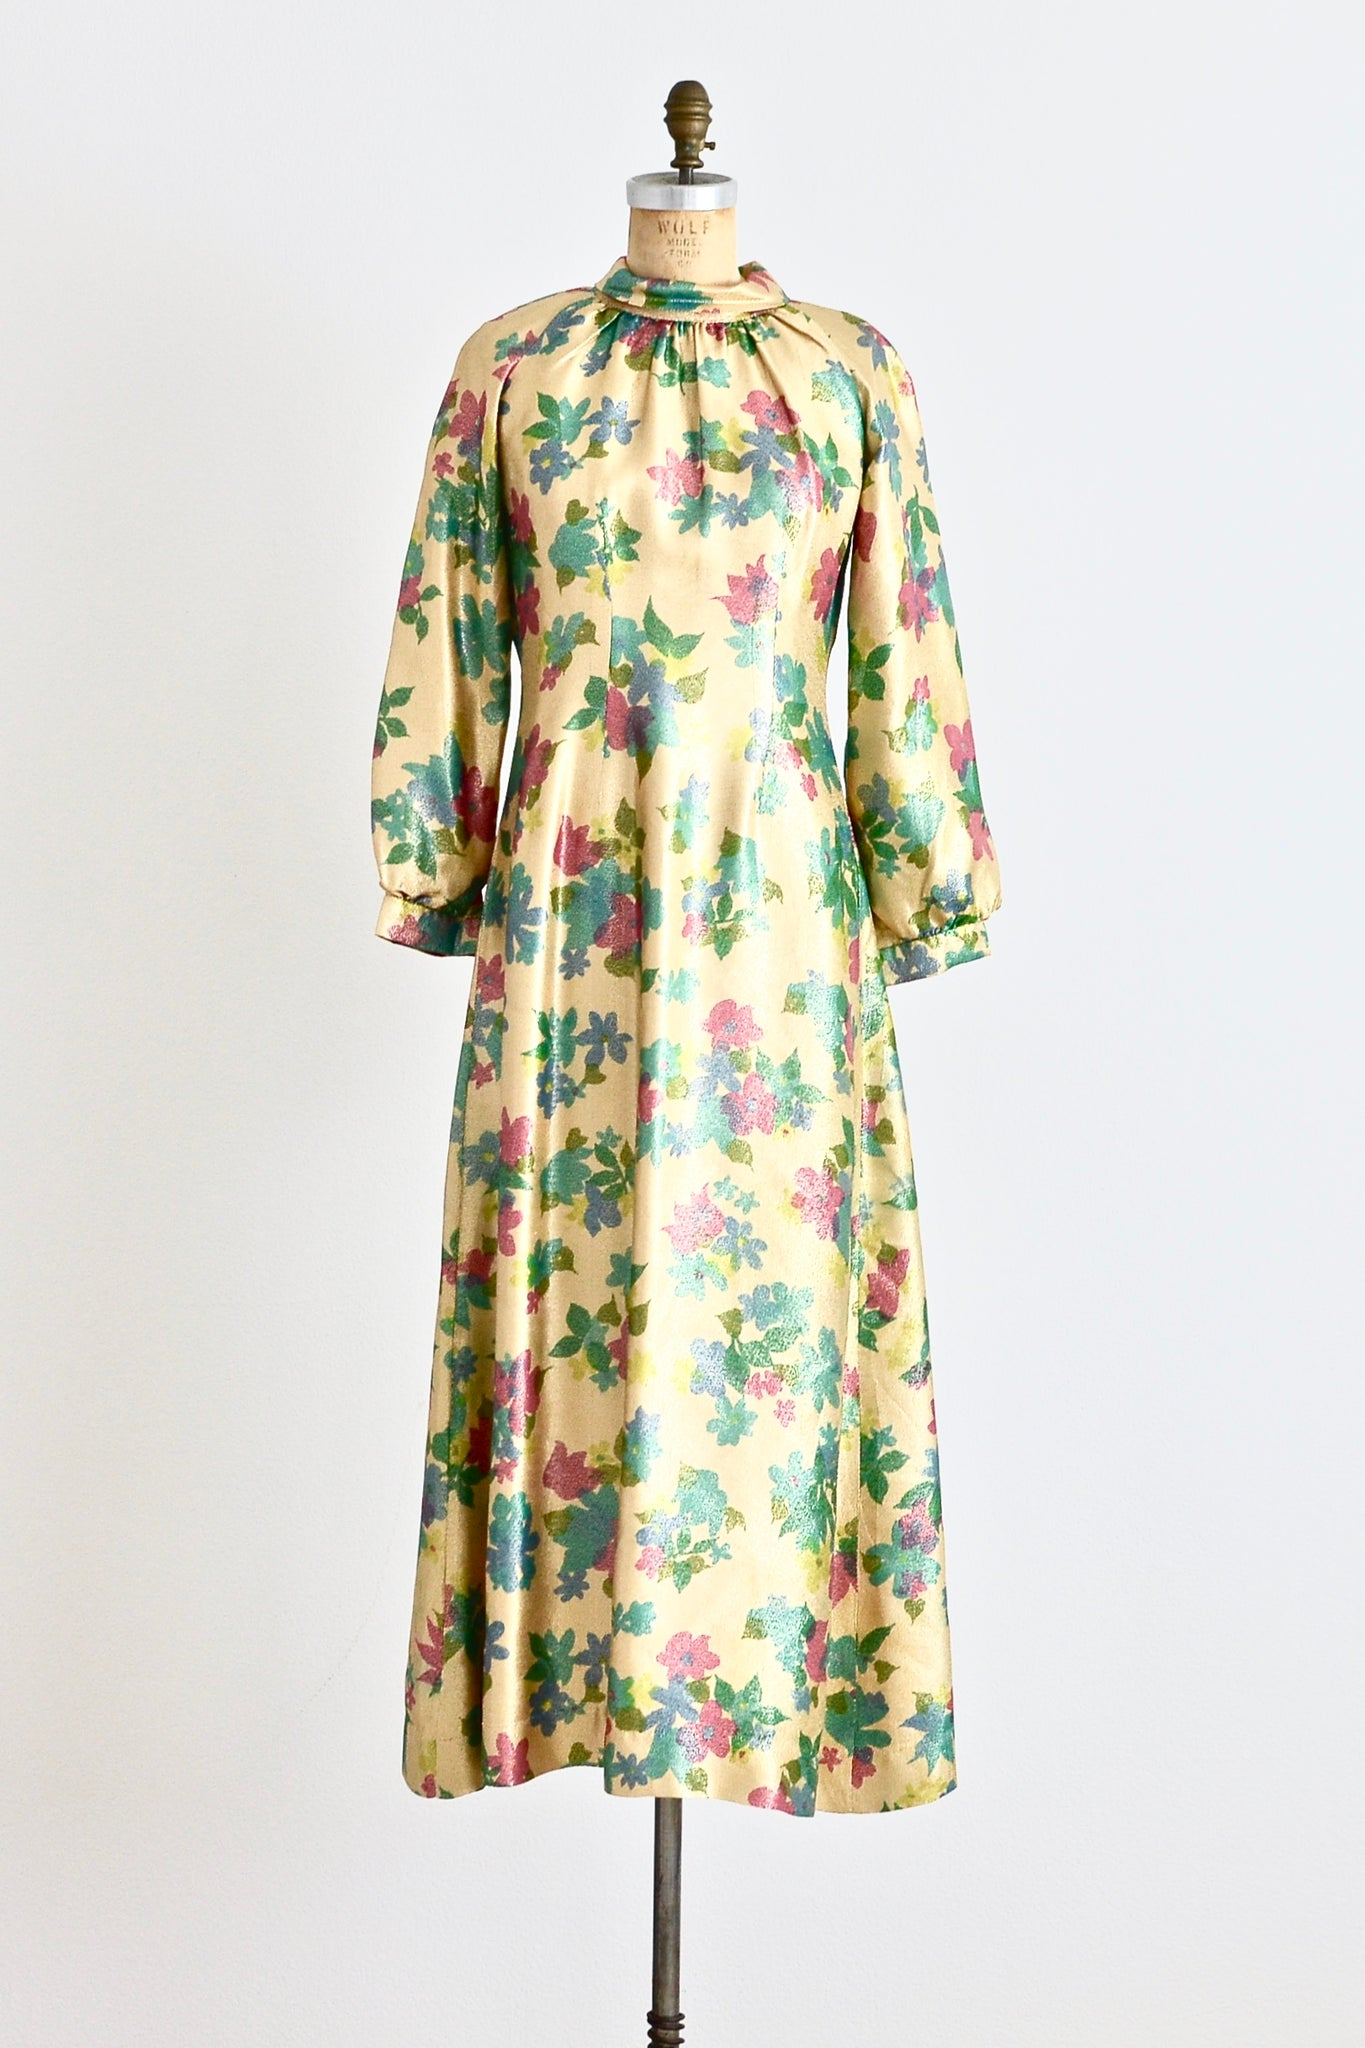 Gold Lamé Floral Dress - Pickled Vintage